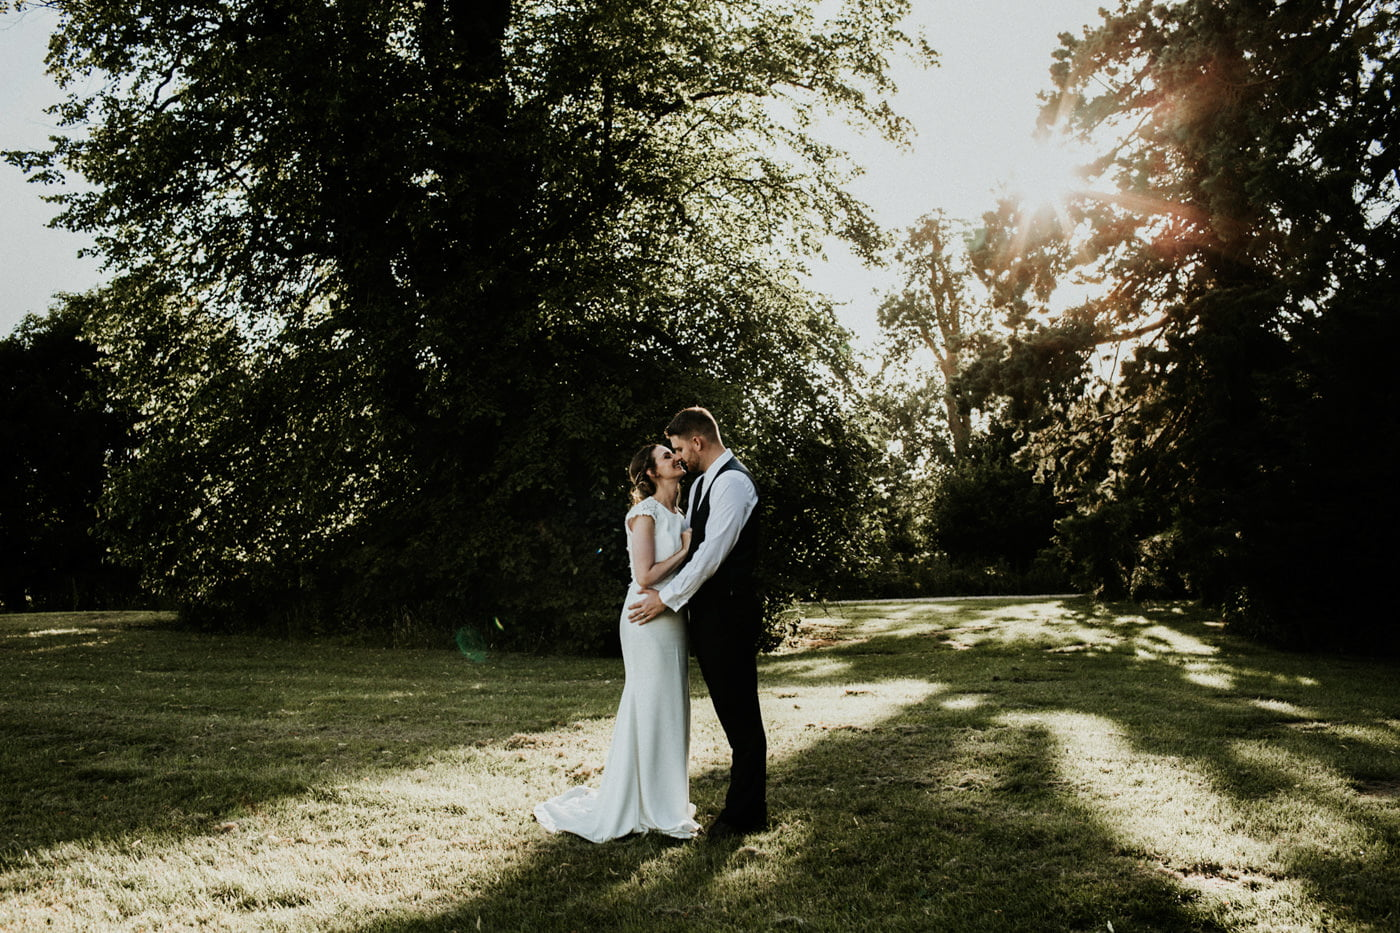 Katy and Adam, Elmhay Park, Somerset 23